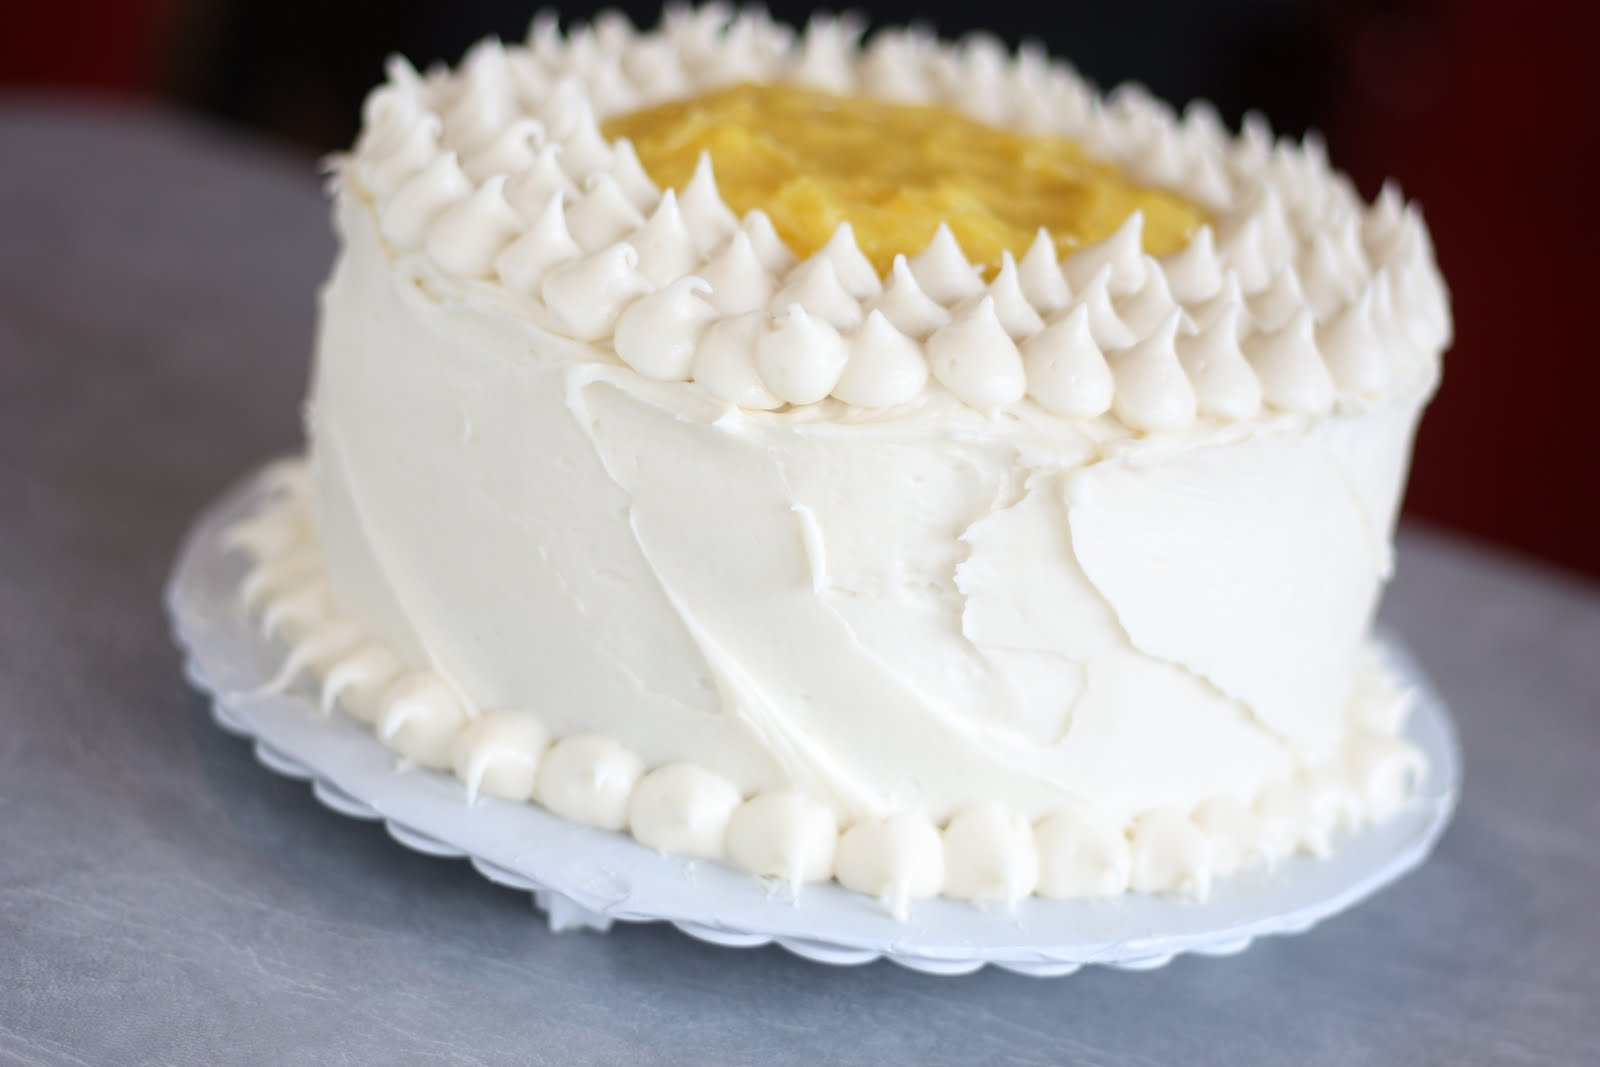 Lemon Layer Cake With Lemon Cream Cheese Frosting Recipes — Dishmaps